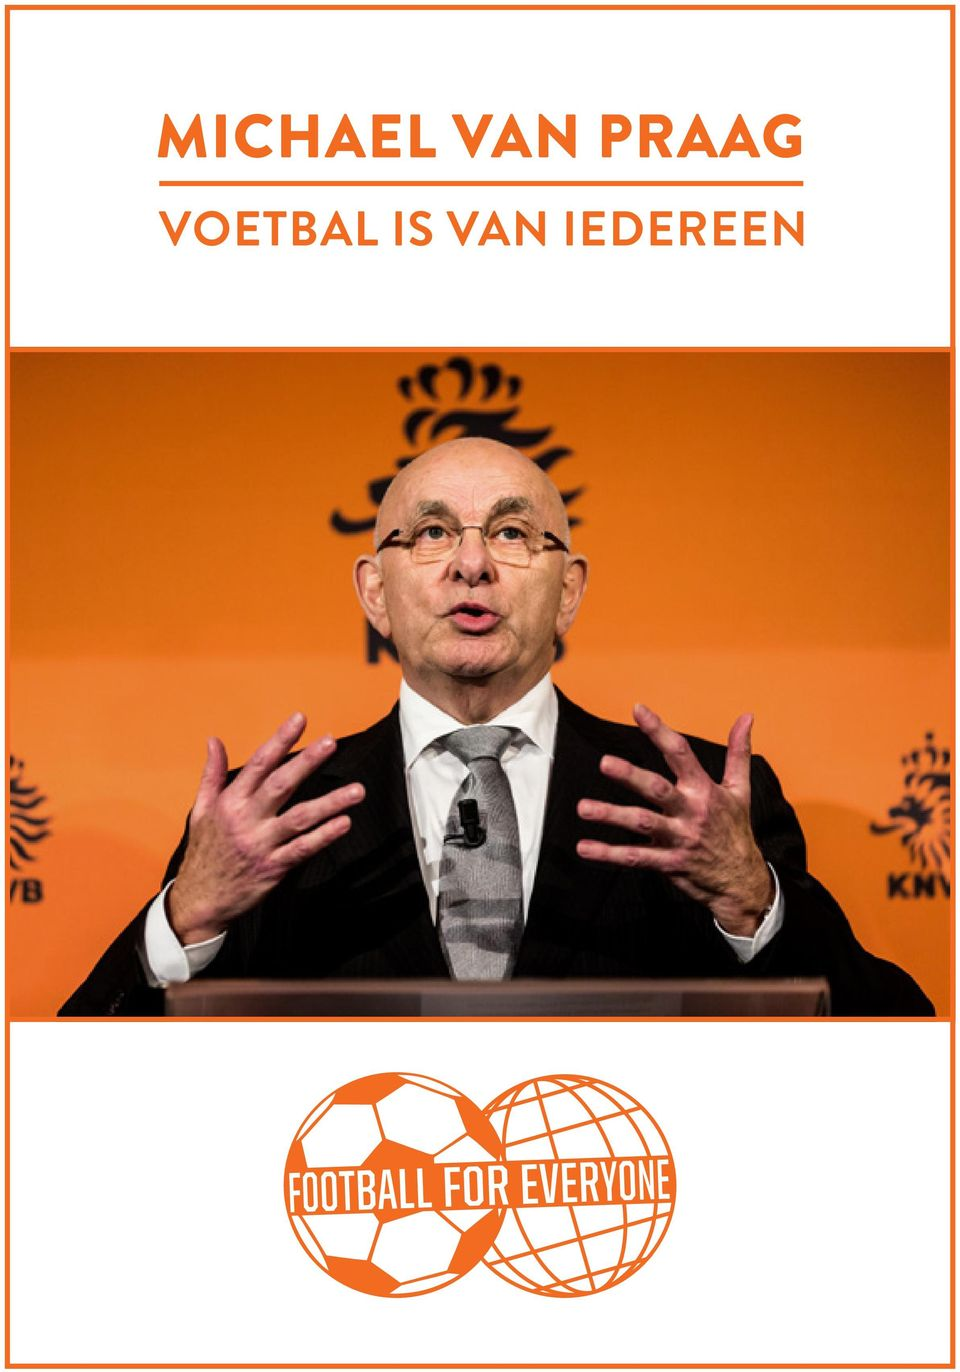 VOETBAL IS